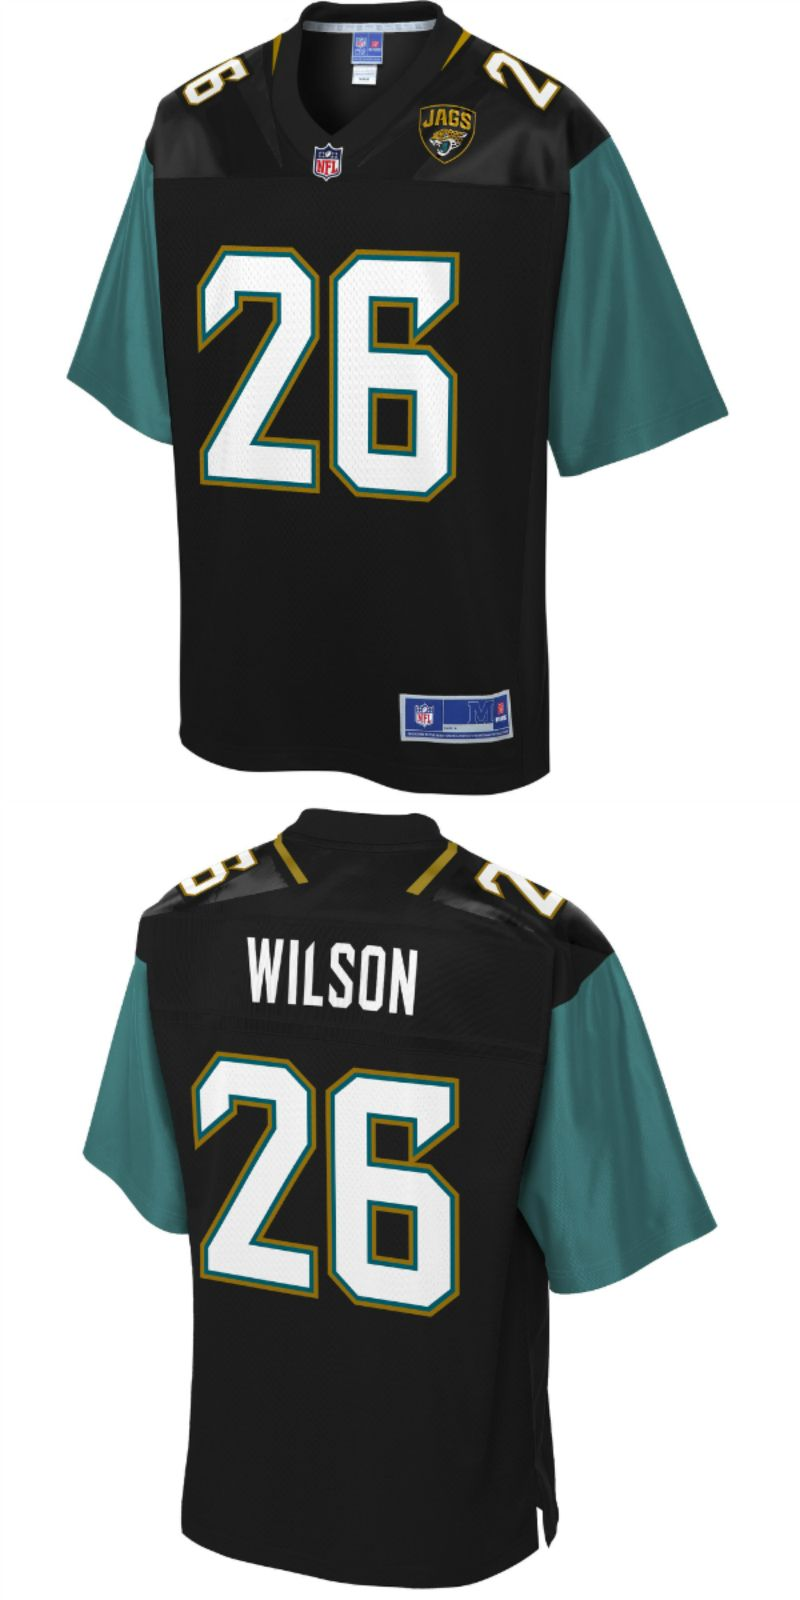 on sale c19c2 bdd6c UP TO 70% OFF. Jarrod Wilson Jacksonville Jaguars NFL Pro ...